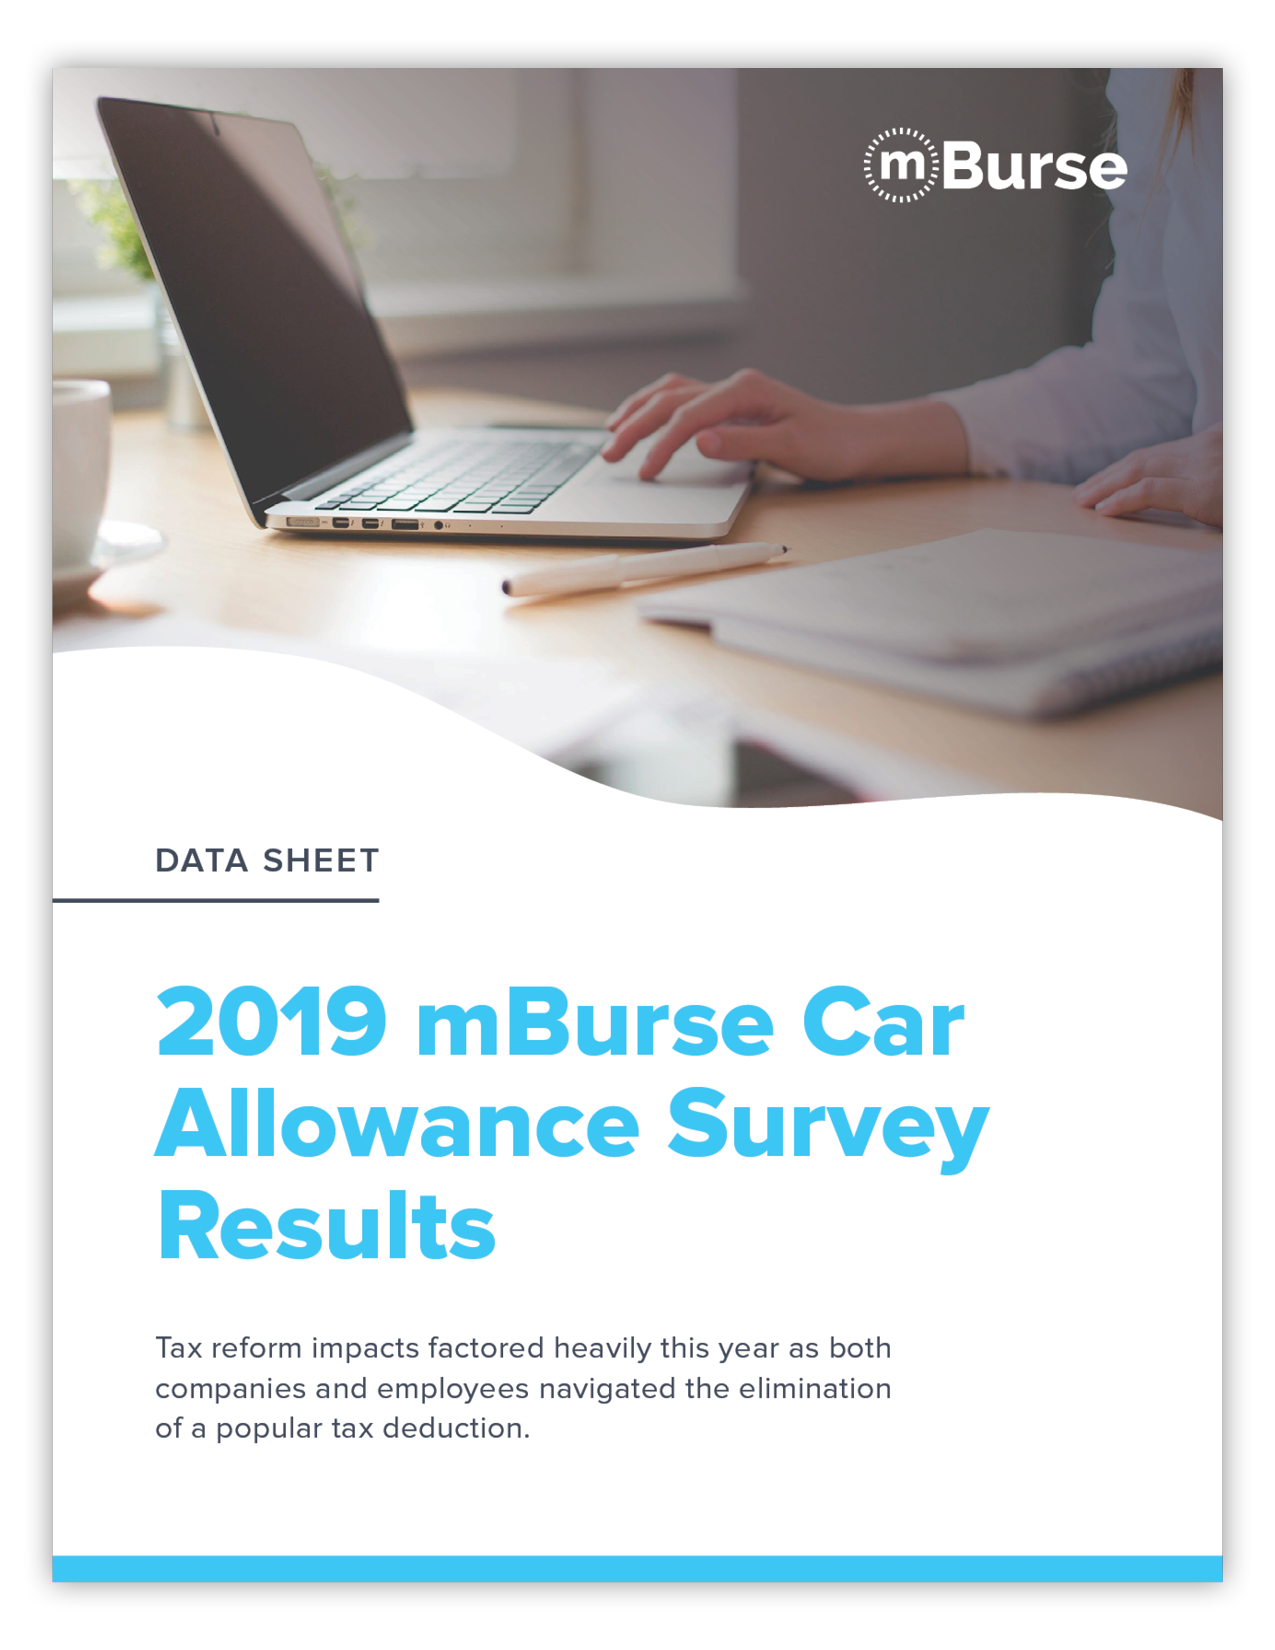 mBurse 2019 Car Allowance Survey